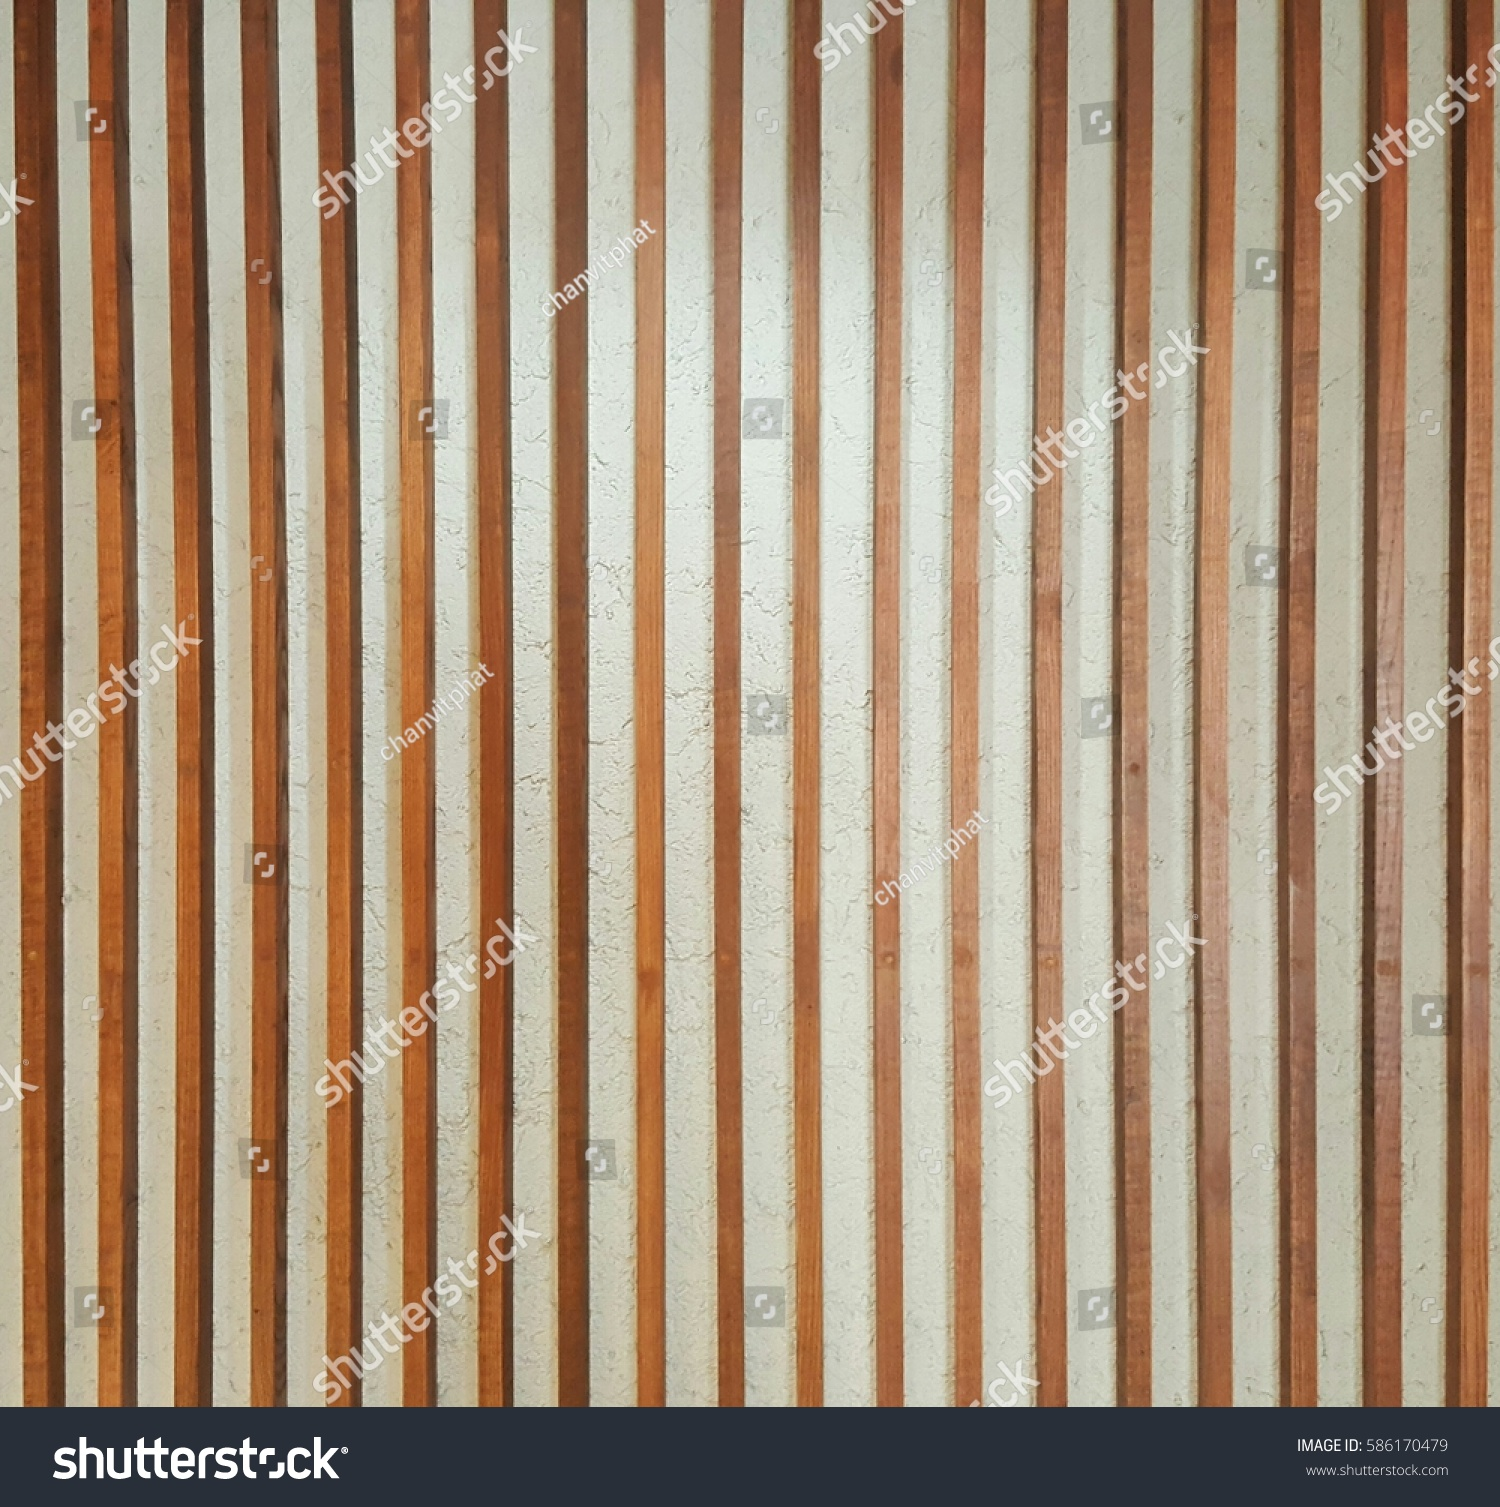 Vertical Wood Slat Wall Wall Covering Vertical Wooden Slats Background Stock Photo Edit